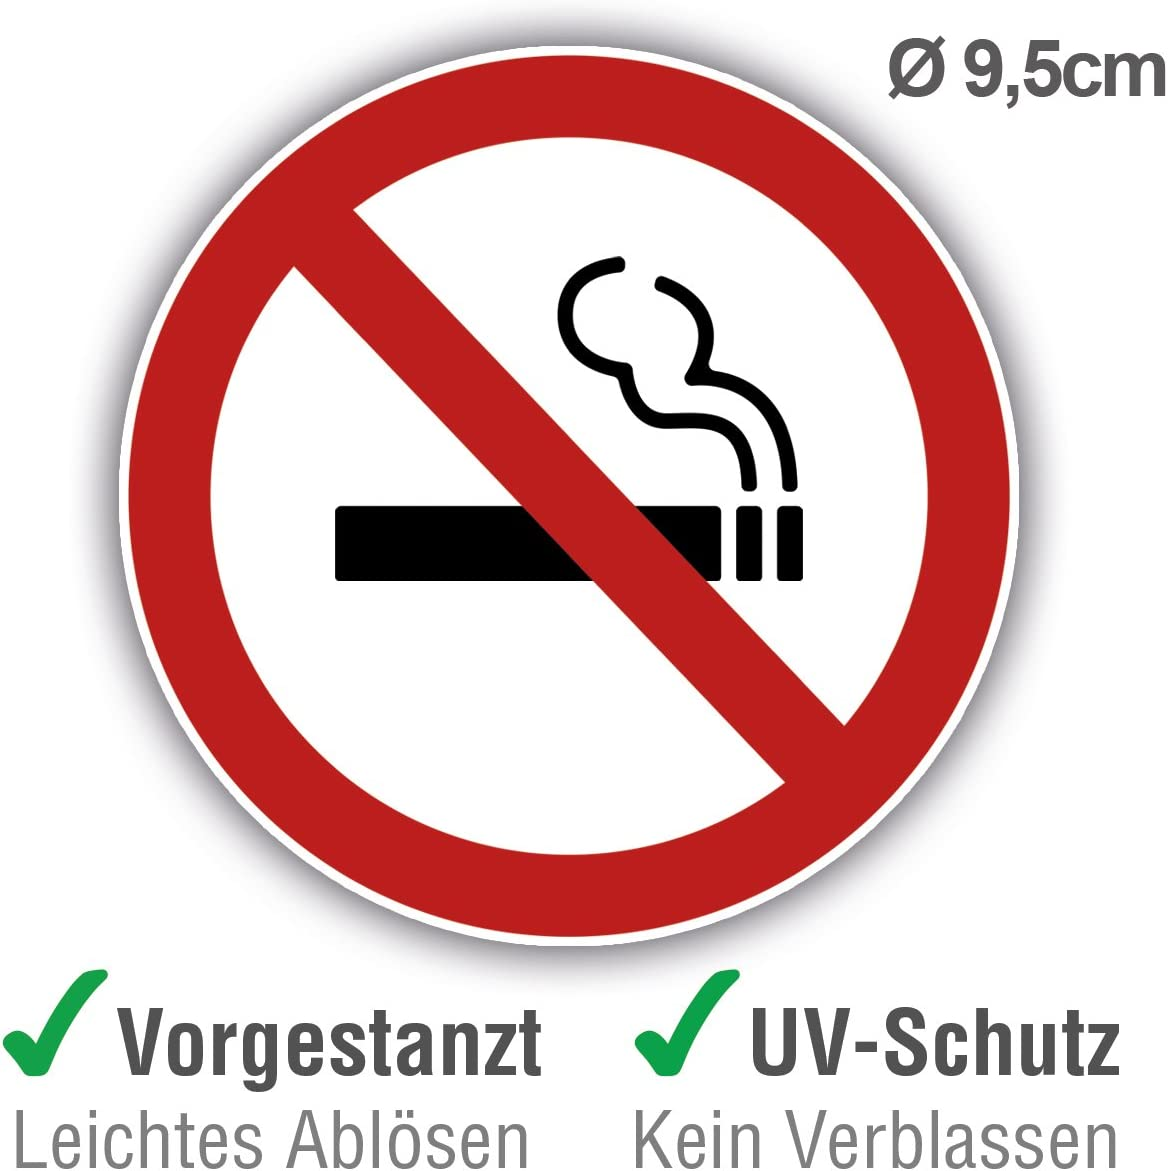 Autocolant sticker interdit ne pas fumer fenetre bureau magasin porte no smoking